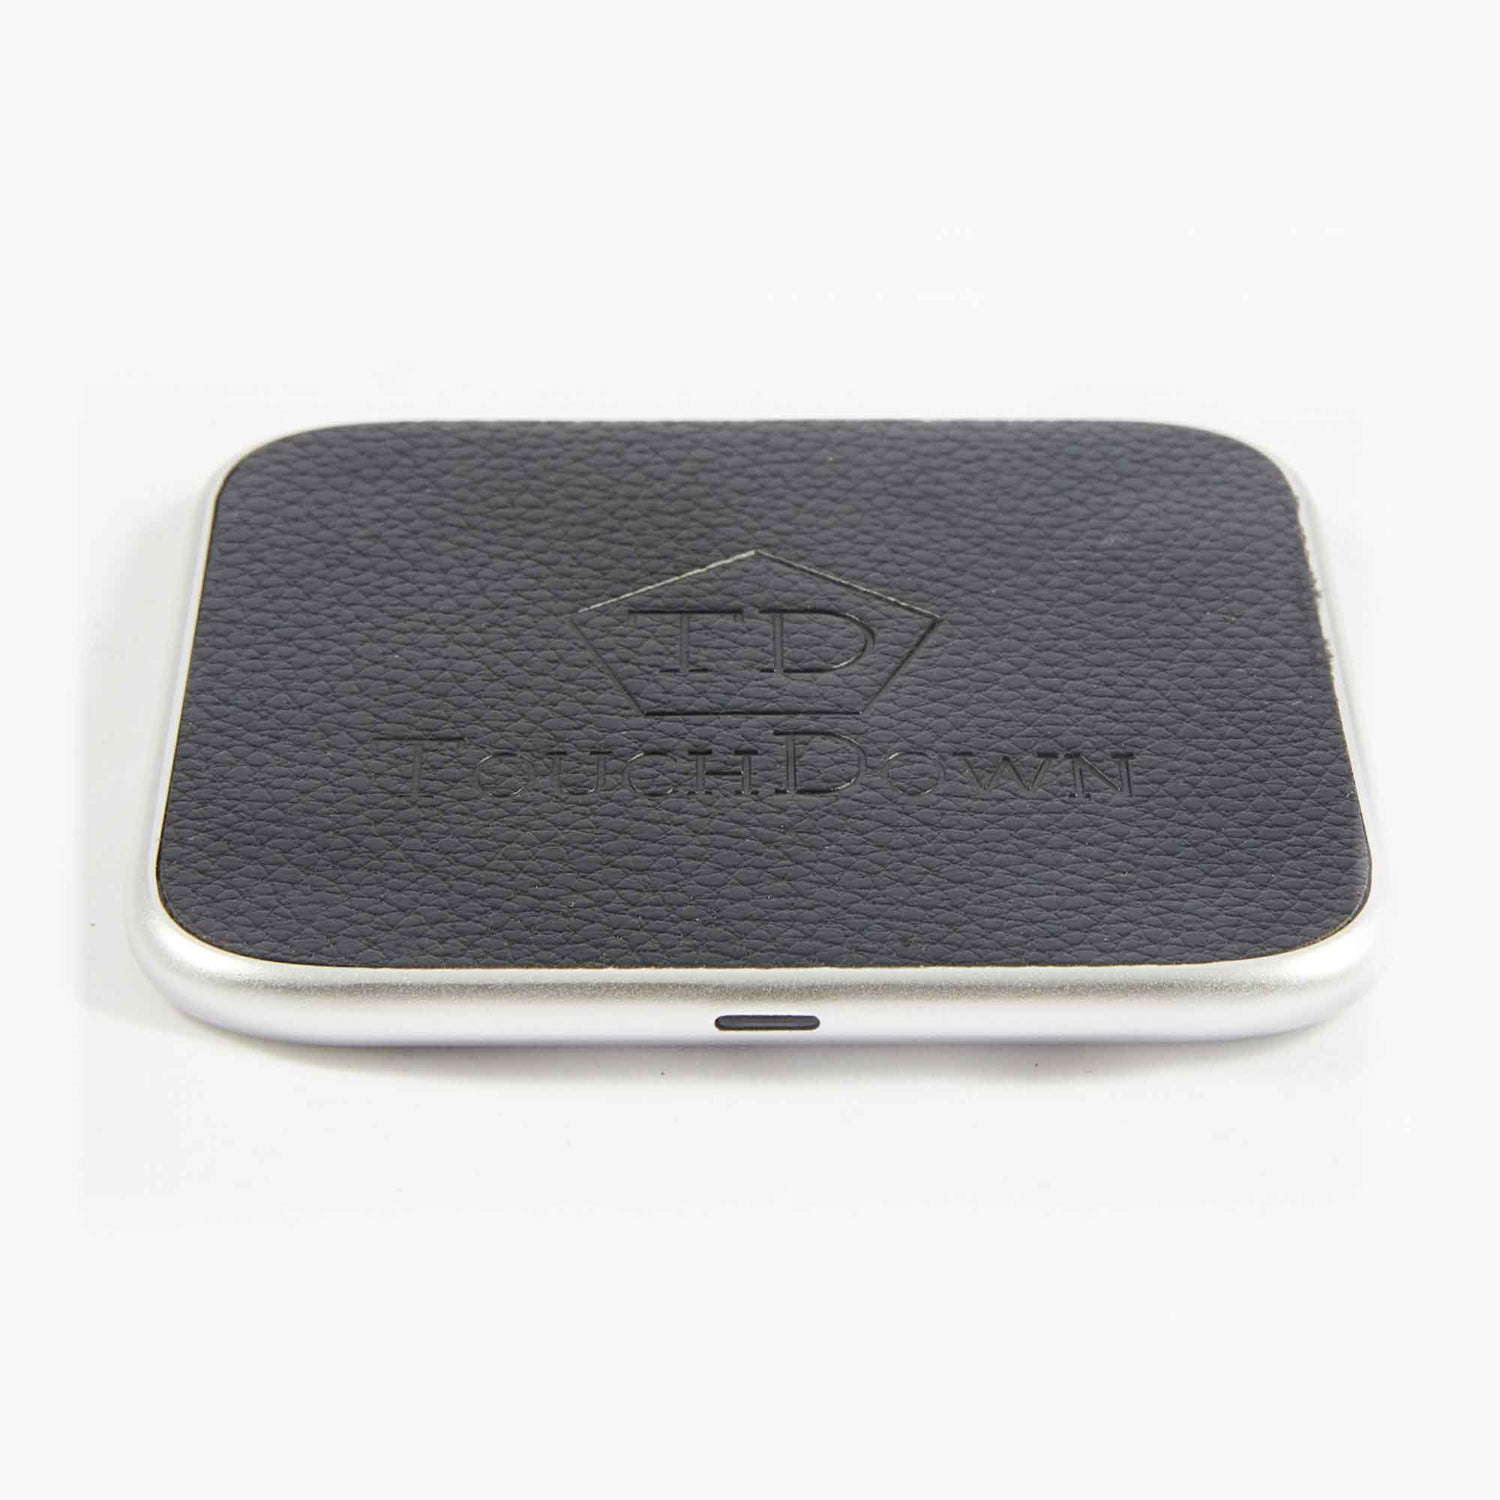 TOUCHDOWN CHARGING Silver Square Smartphone Wireless Charging Pad